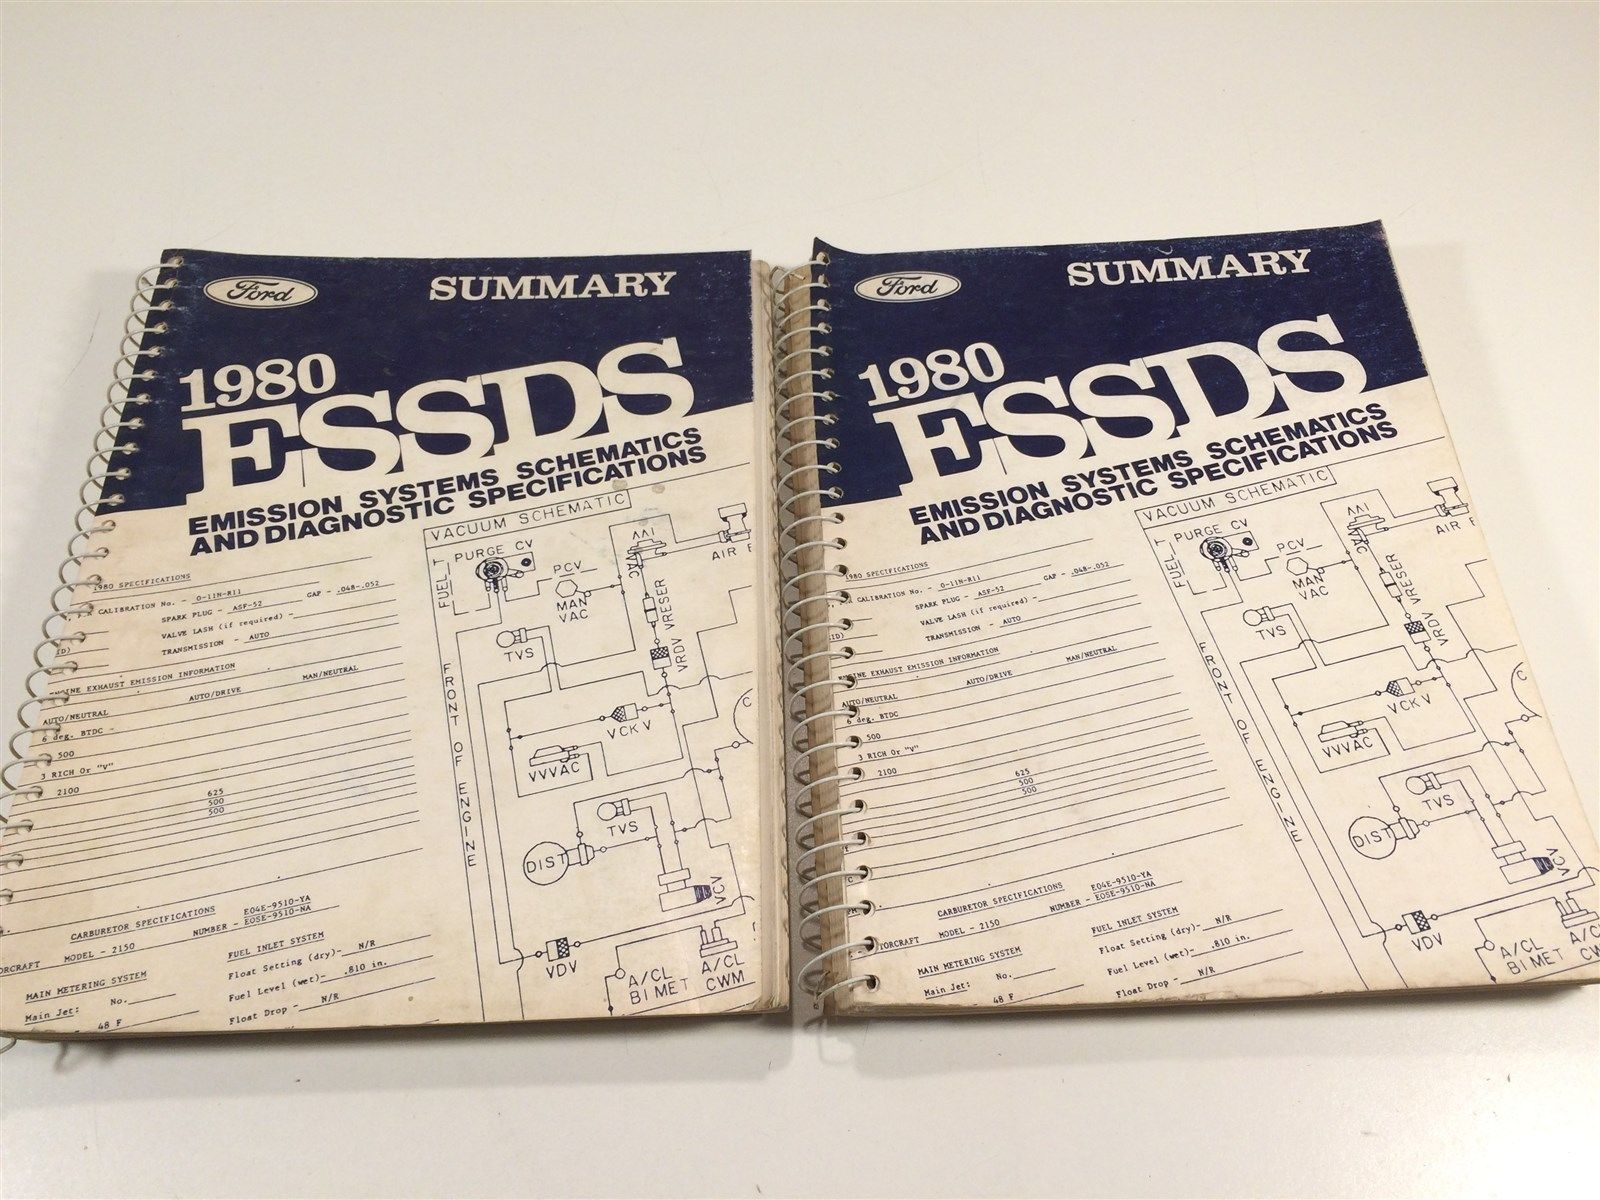 1980 Ford ESSDS Summary Emission Systems Schematics and Diagnostic Specification - $9.99